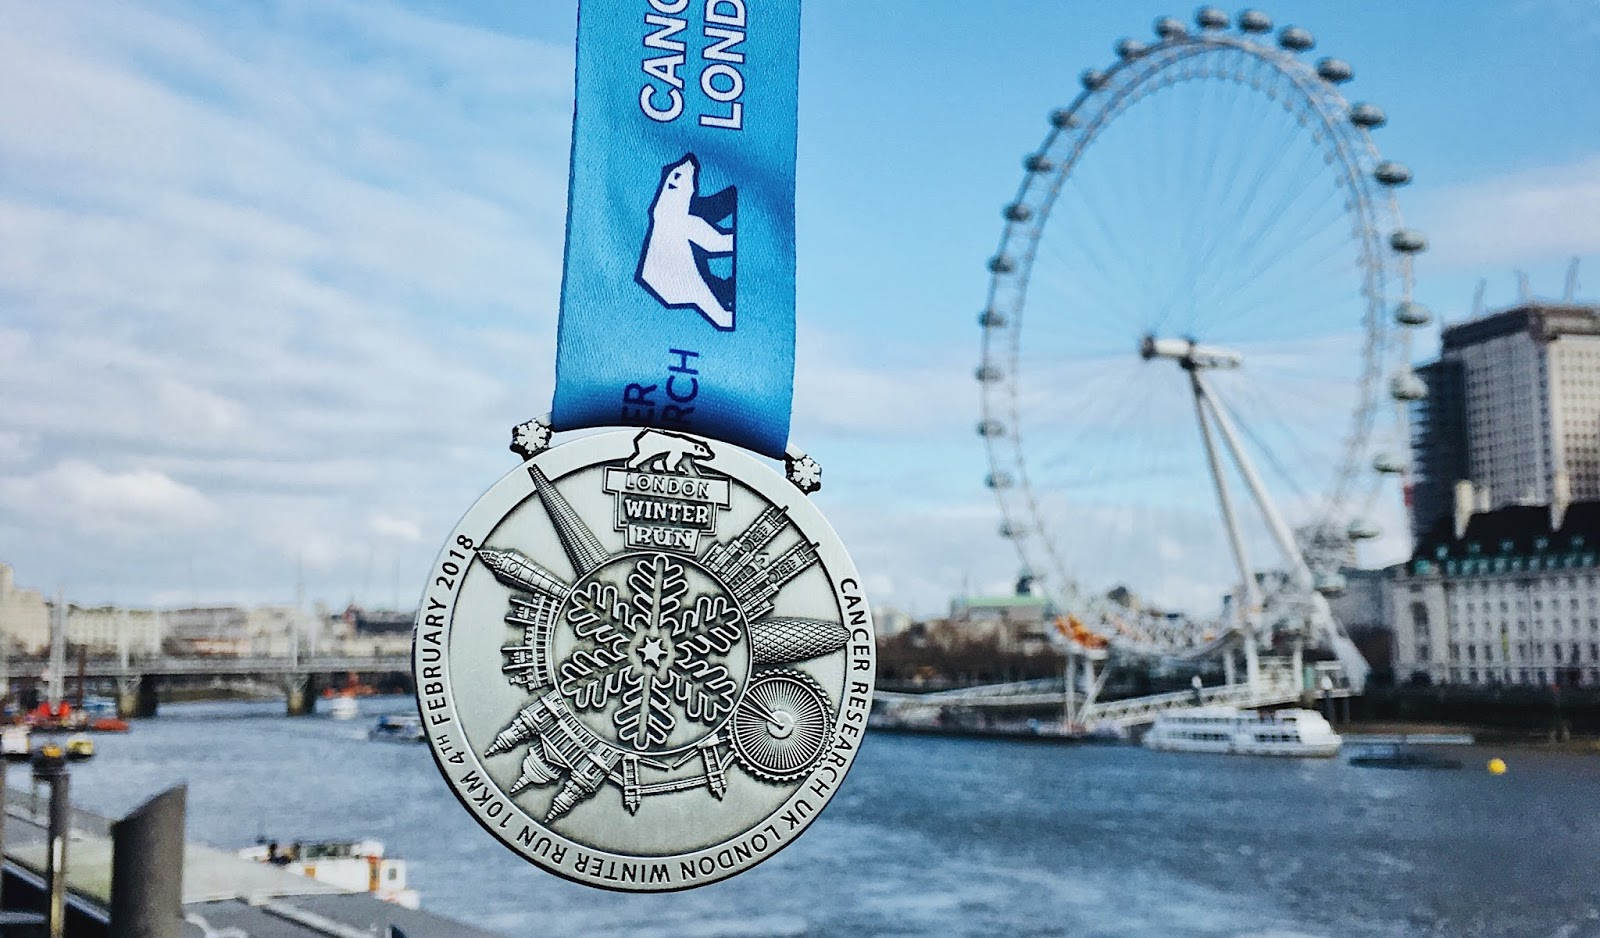 London Winterrun Medal